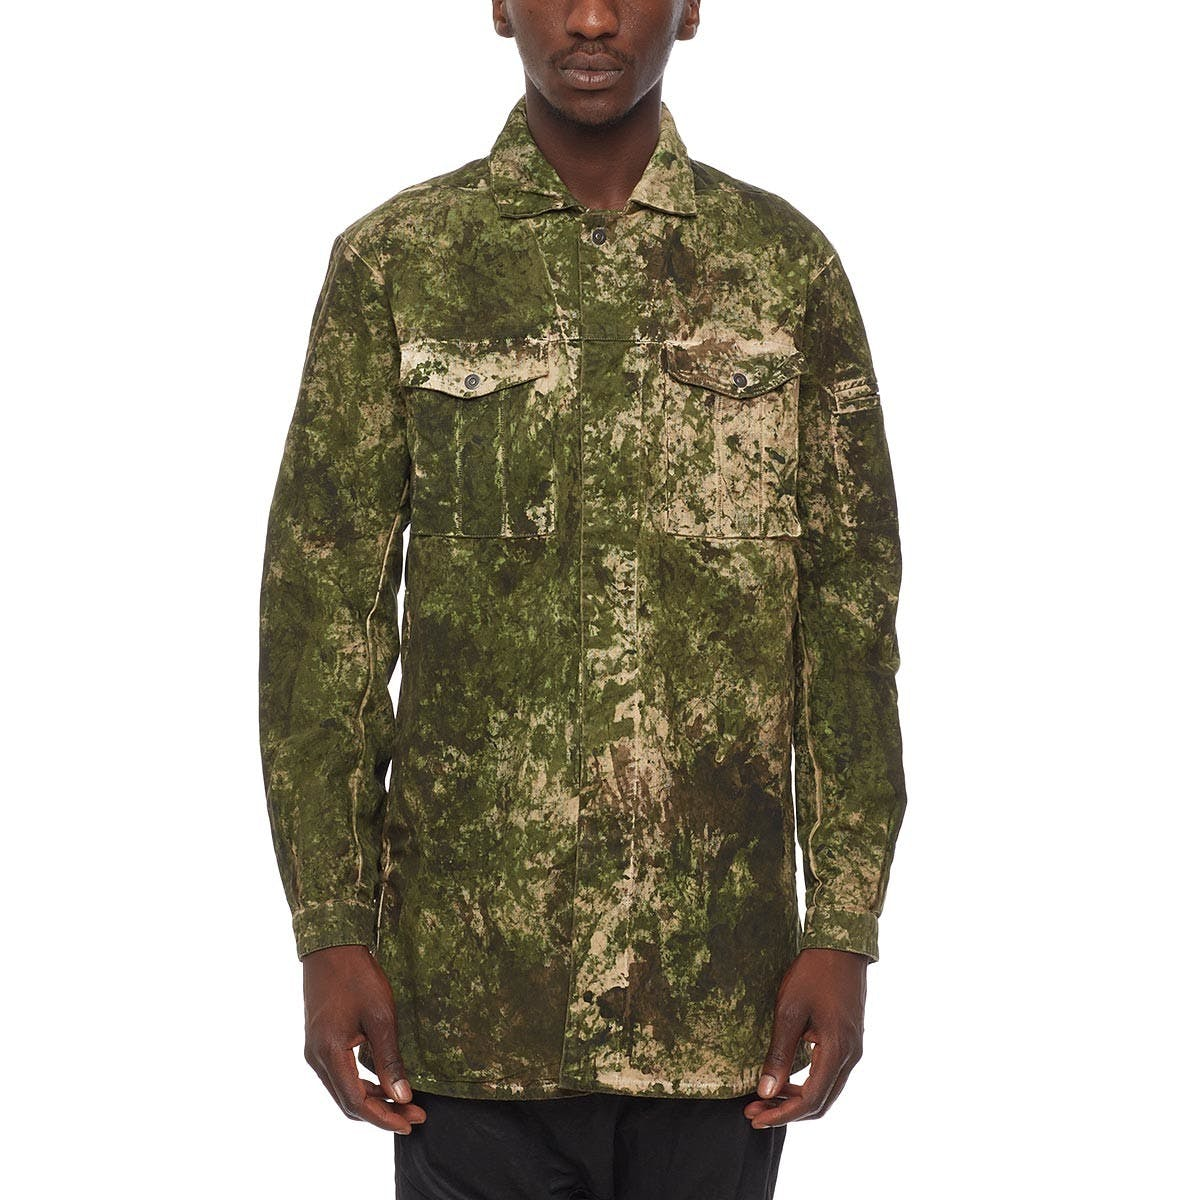 NEW AESTHETIC APPEAL OF CAMOUFLAGE IN A NON-MILITARY MANNER